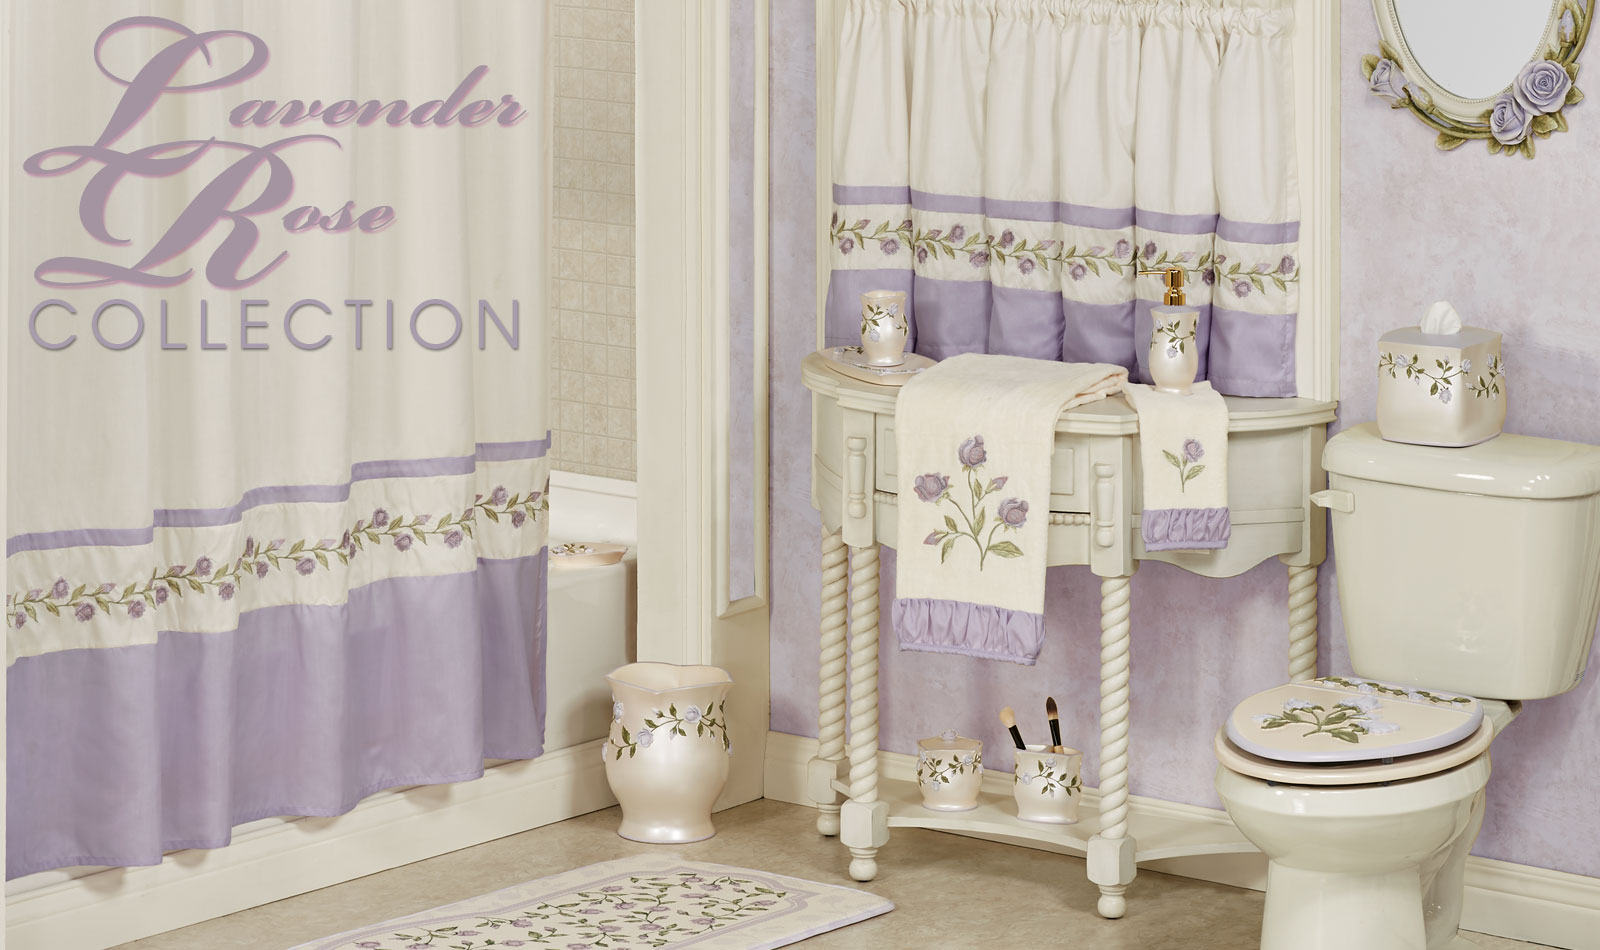 Lavender Rose Bath Collection